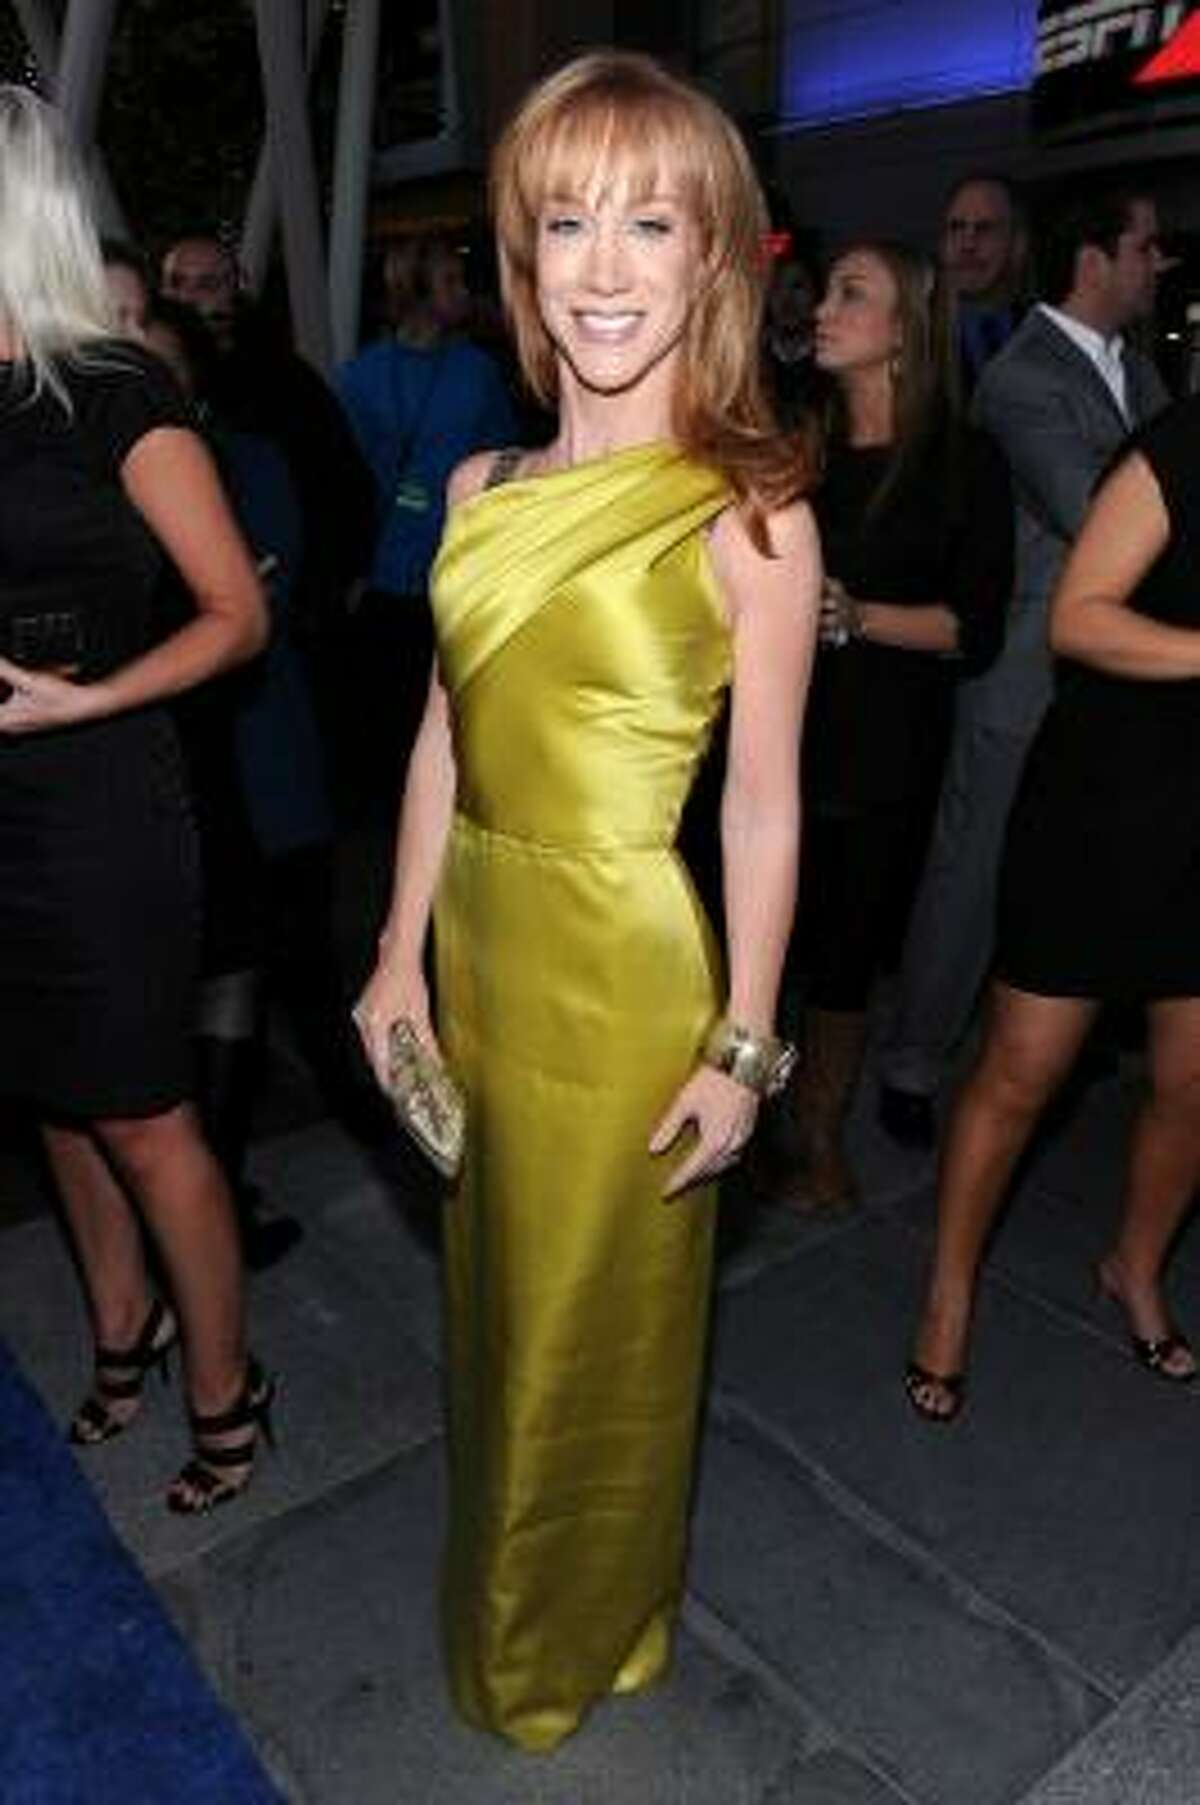 Kathy Griffin in a gold Oscar de la Renta gown. Elegant and fitting of the red carpet. Makes even Kathy Griffin look good.